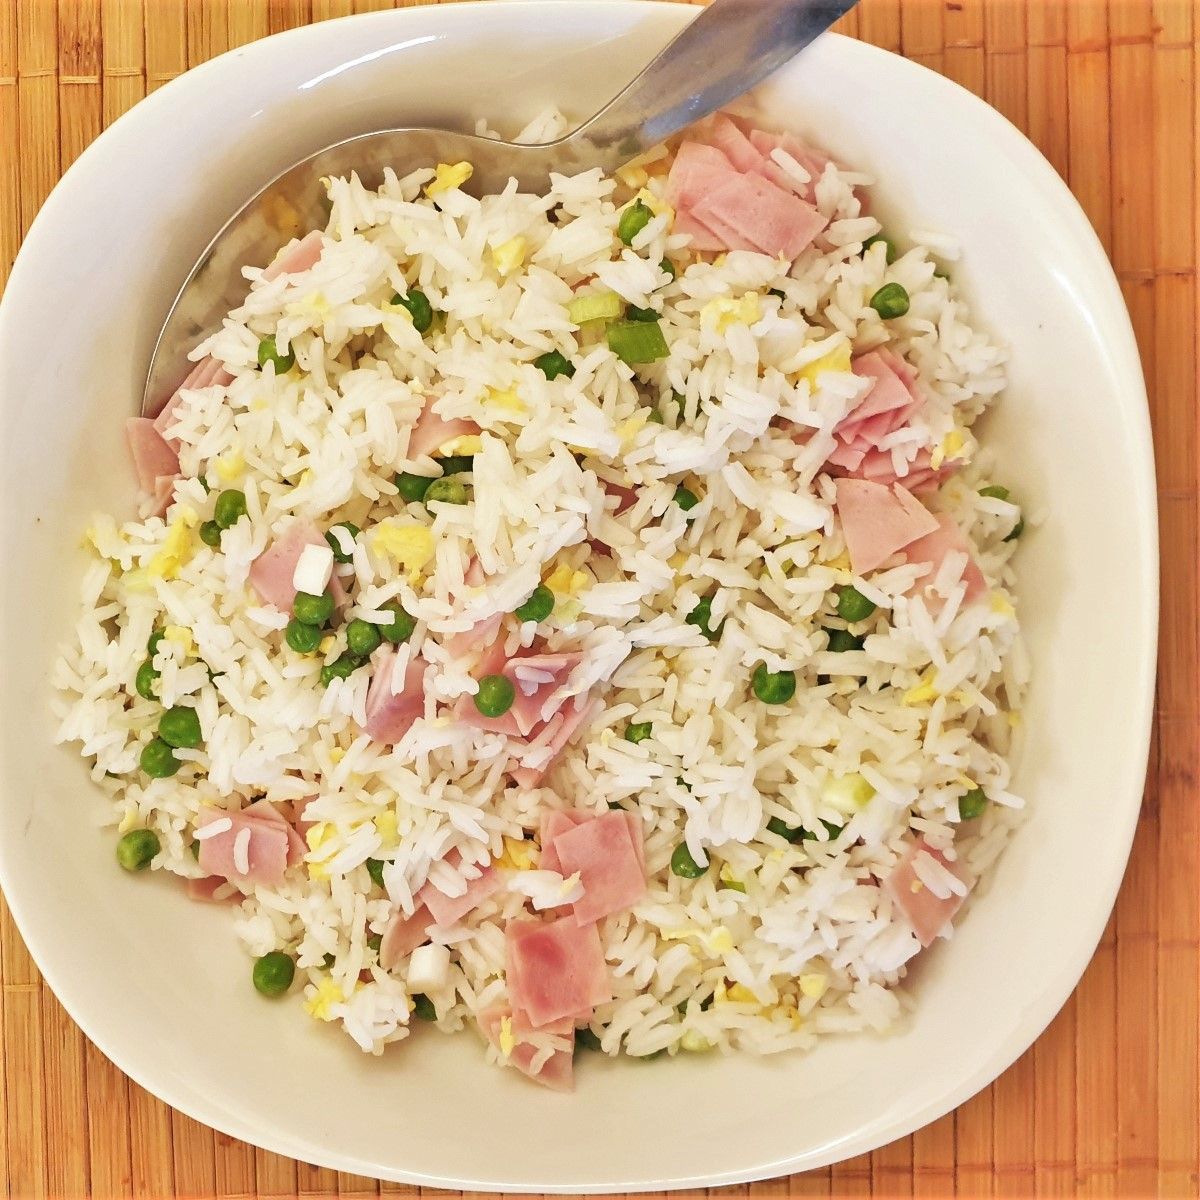 Overhead shot of a serving bowl filled with egg fried rice with egg, chopped ham and peas